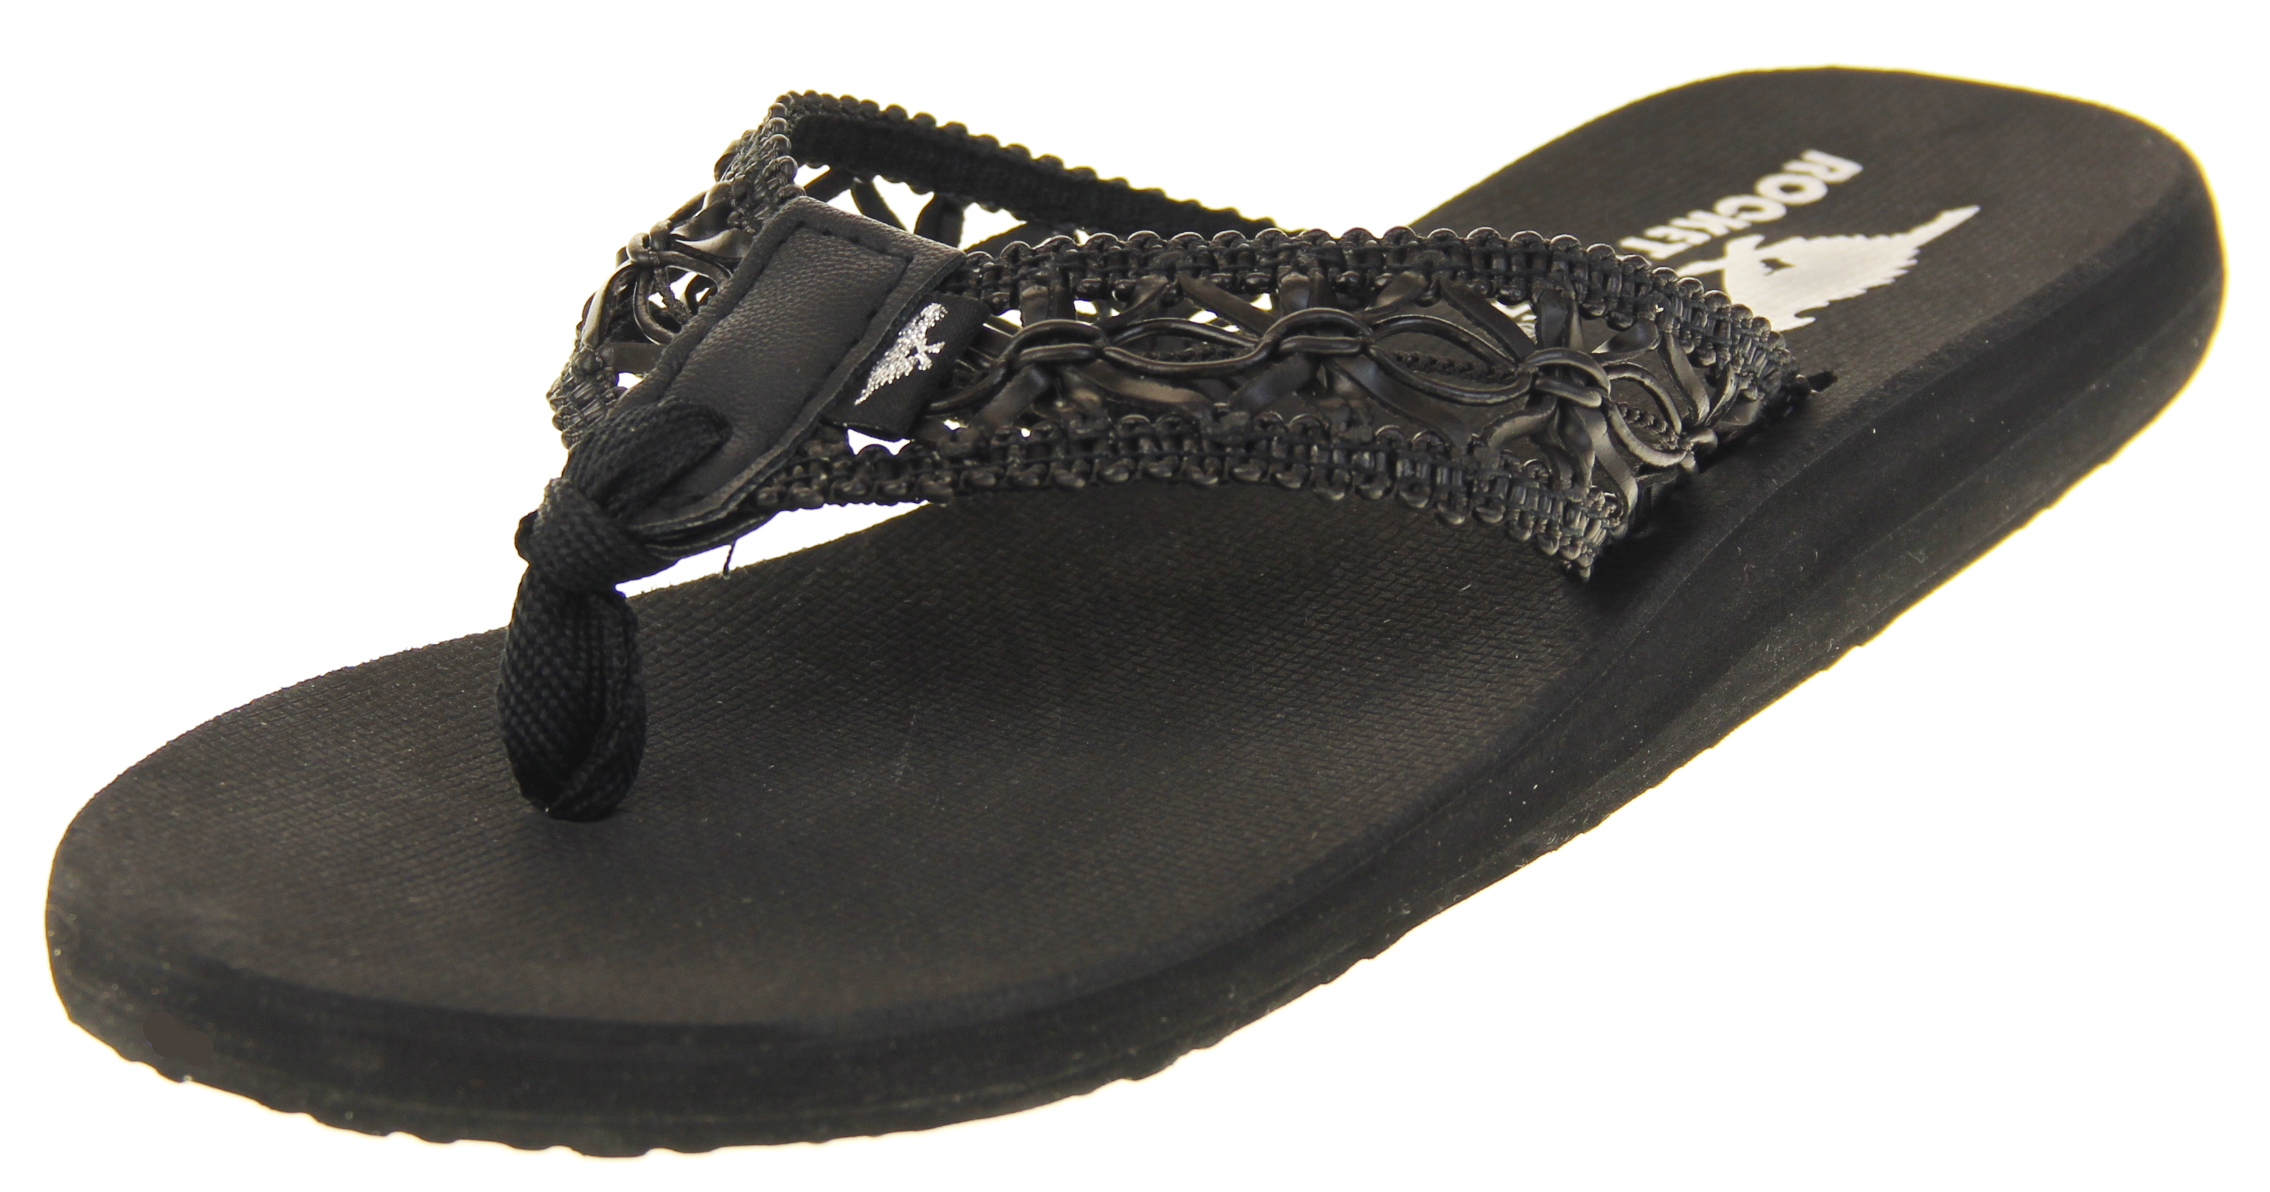 21efd6c48aa63 Womens Rocket Dog Summer Holiday Toe Post Mule Sandals Shoes Size 3 4 5 6